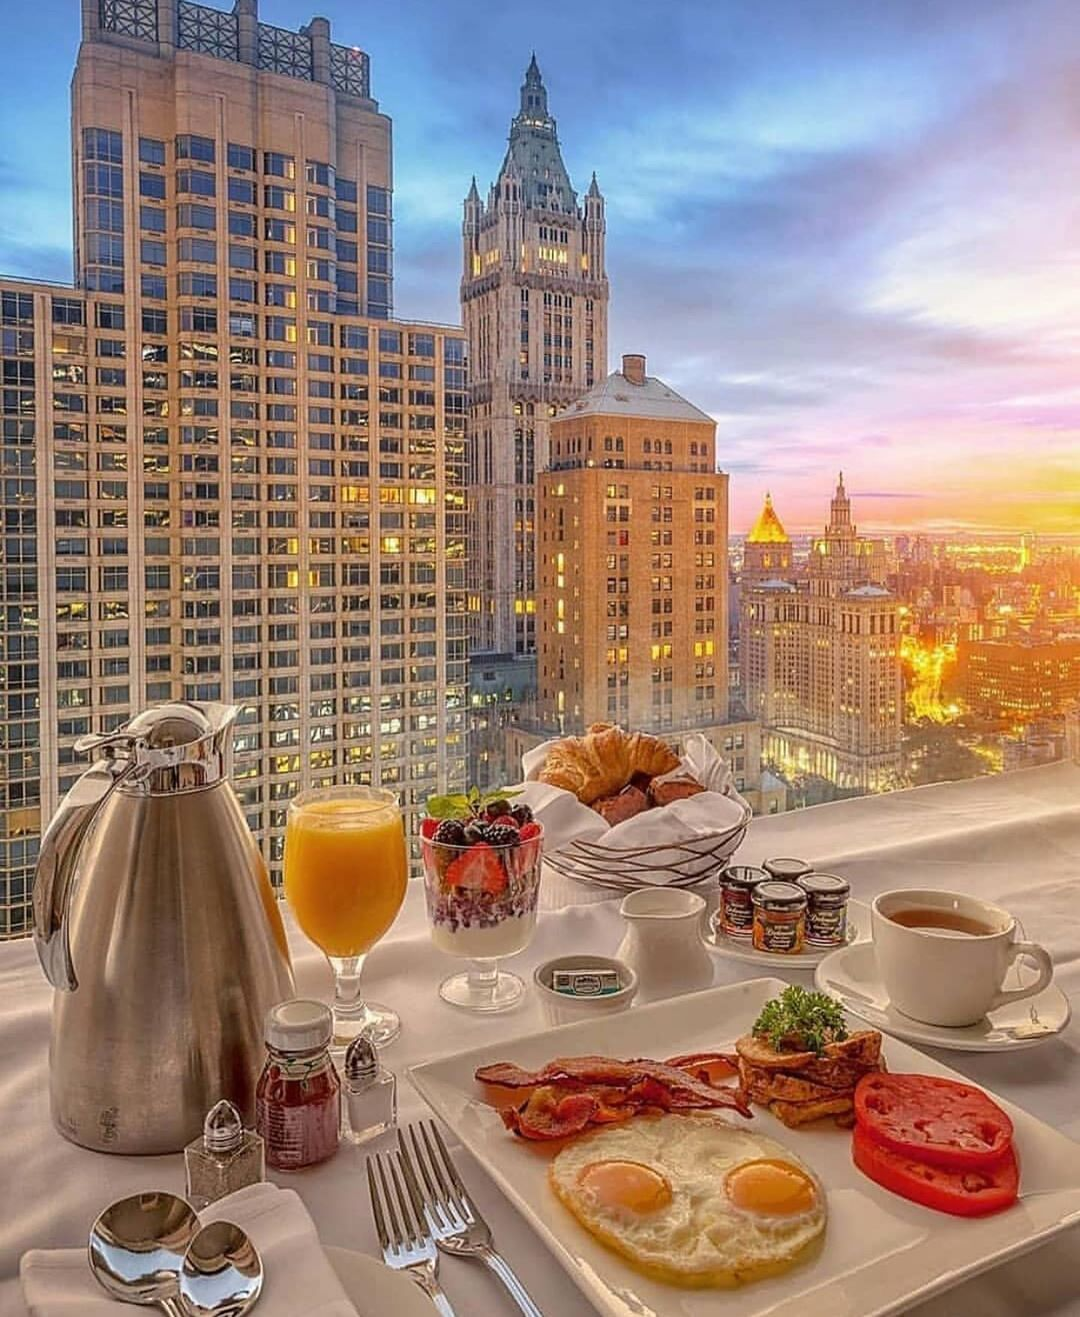 Breakfast with a view 😍 😋 via @leatherandsoles ——————————————____________#leatherandsoles